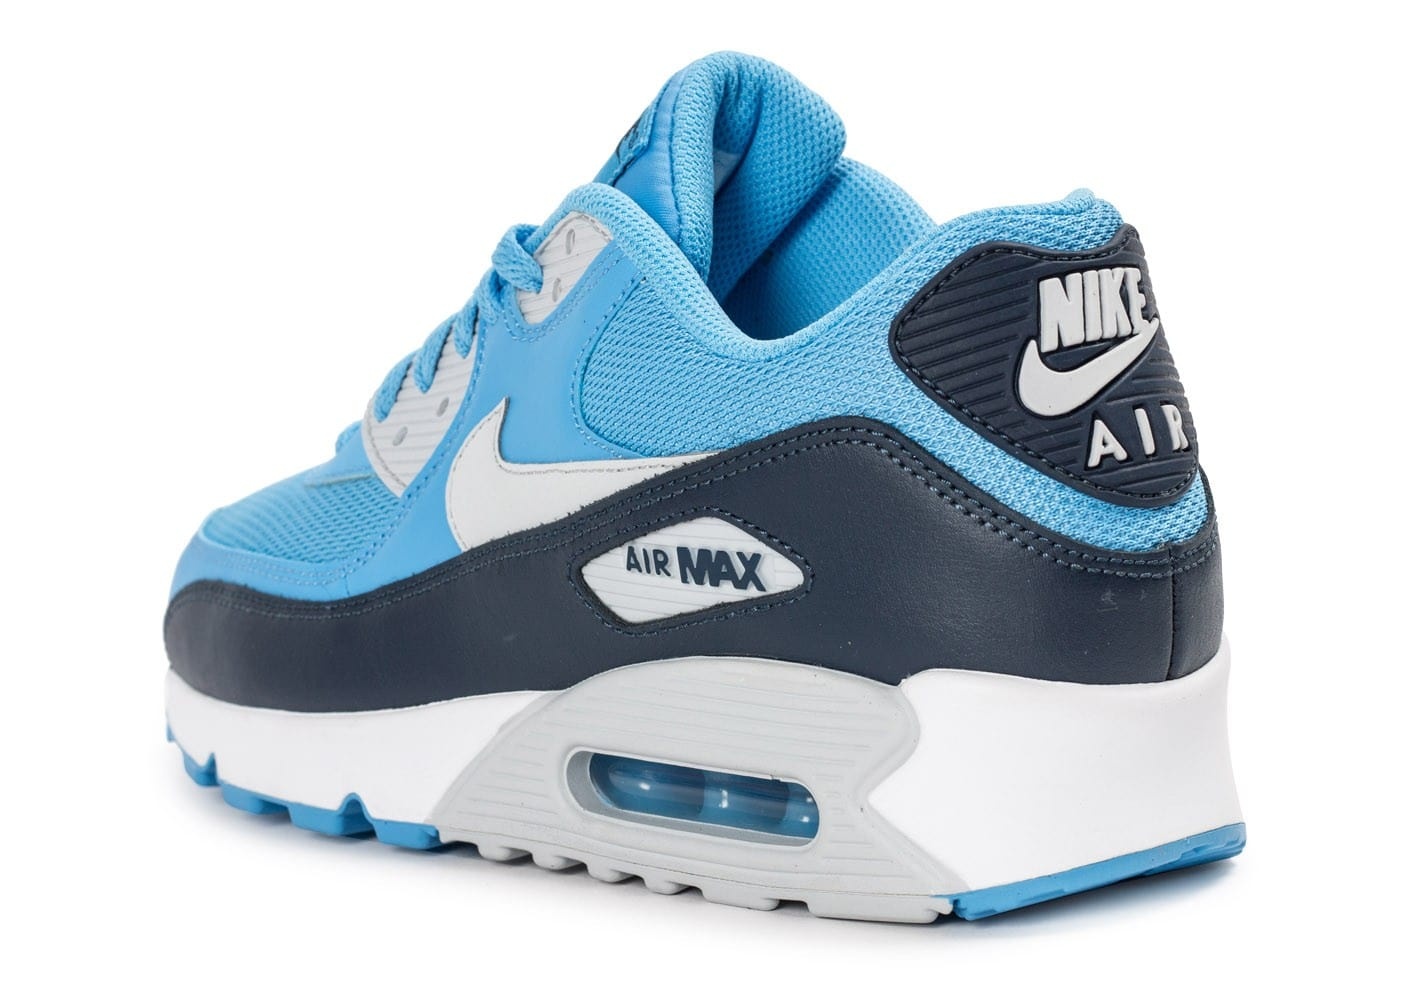 discount shop super cute a few days away coupon code for nike air max 90 essential bleu 4ce72 1a929